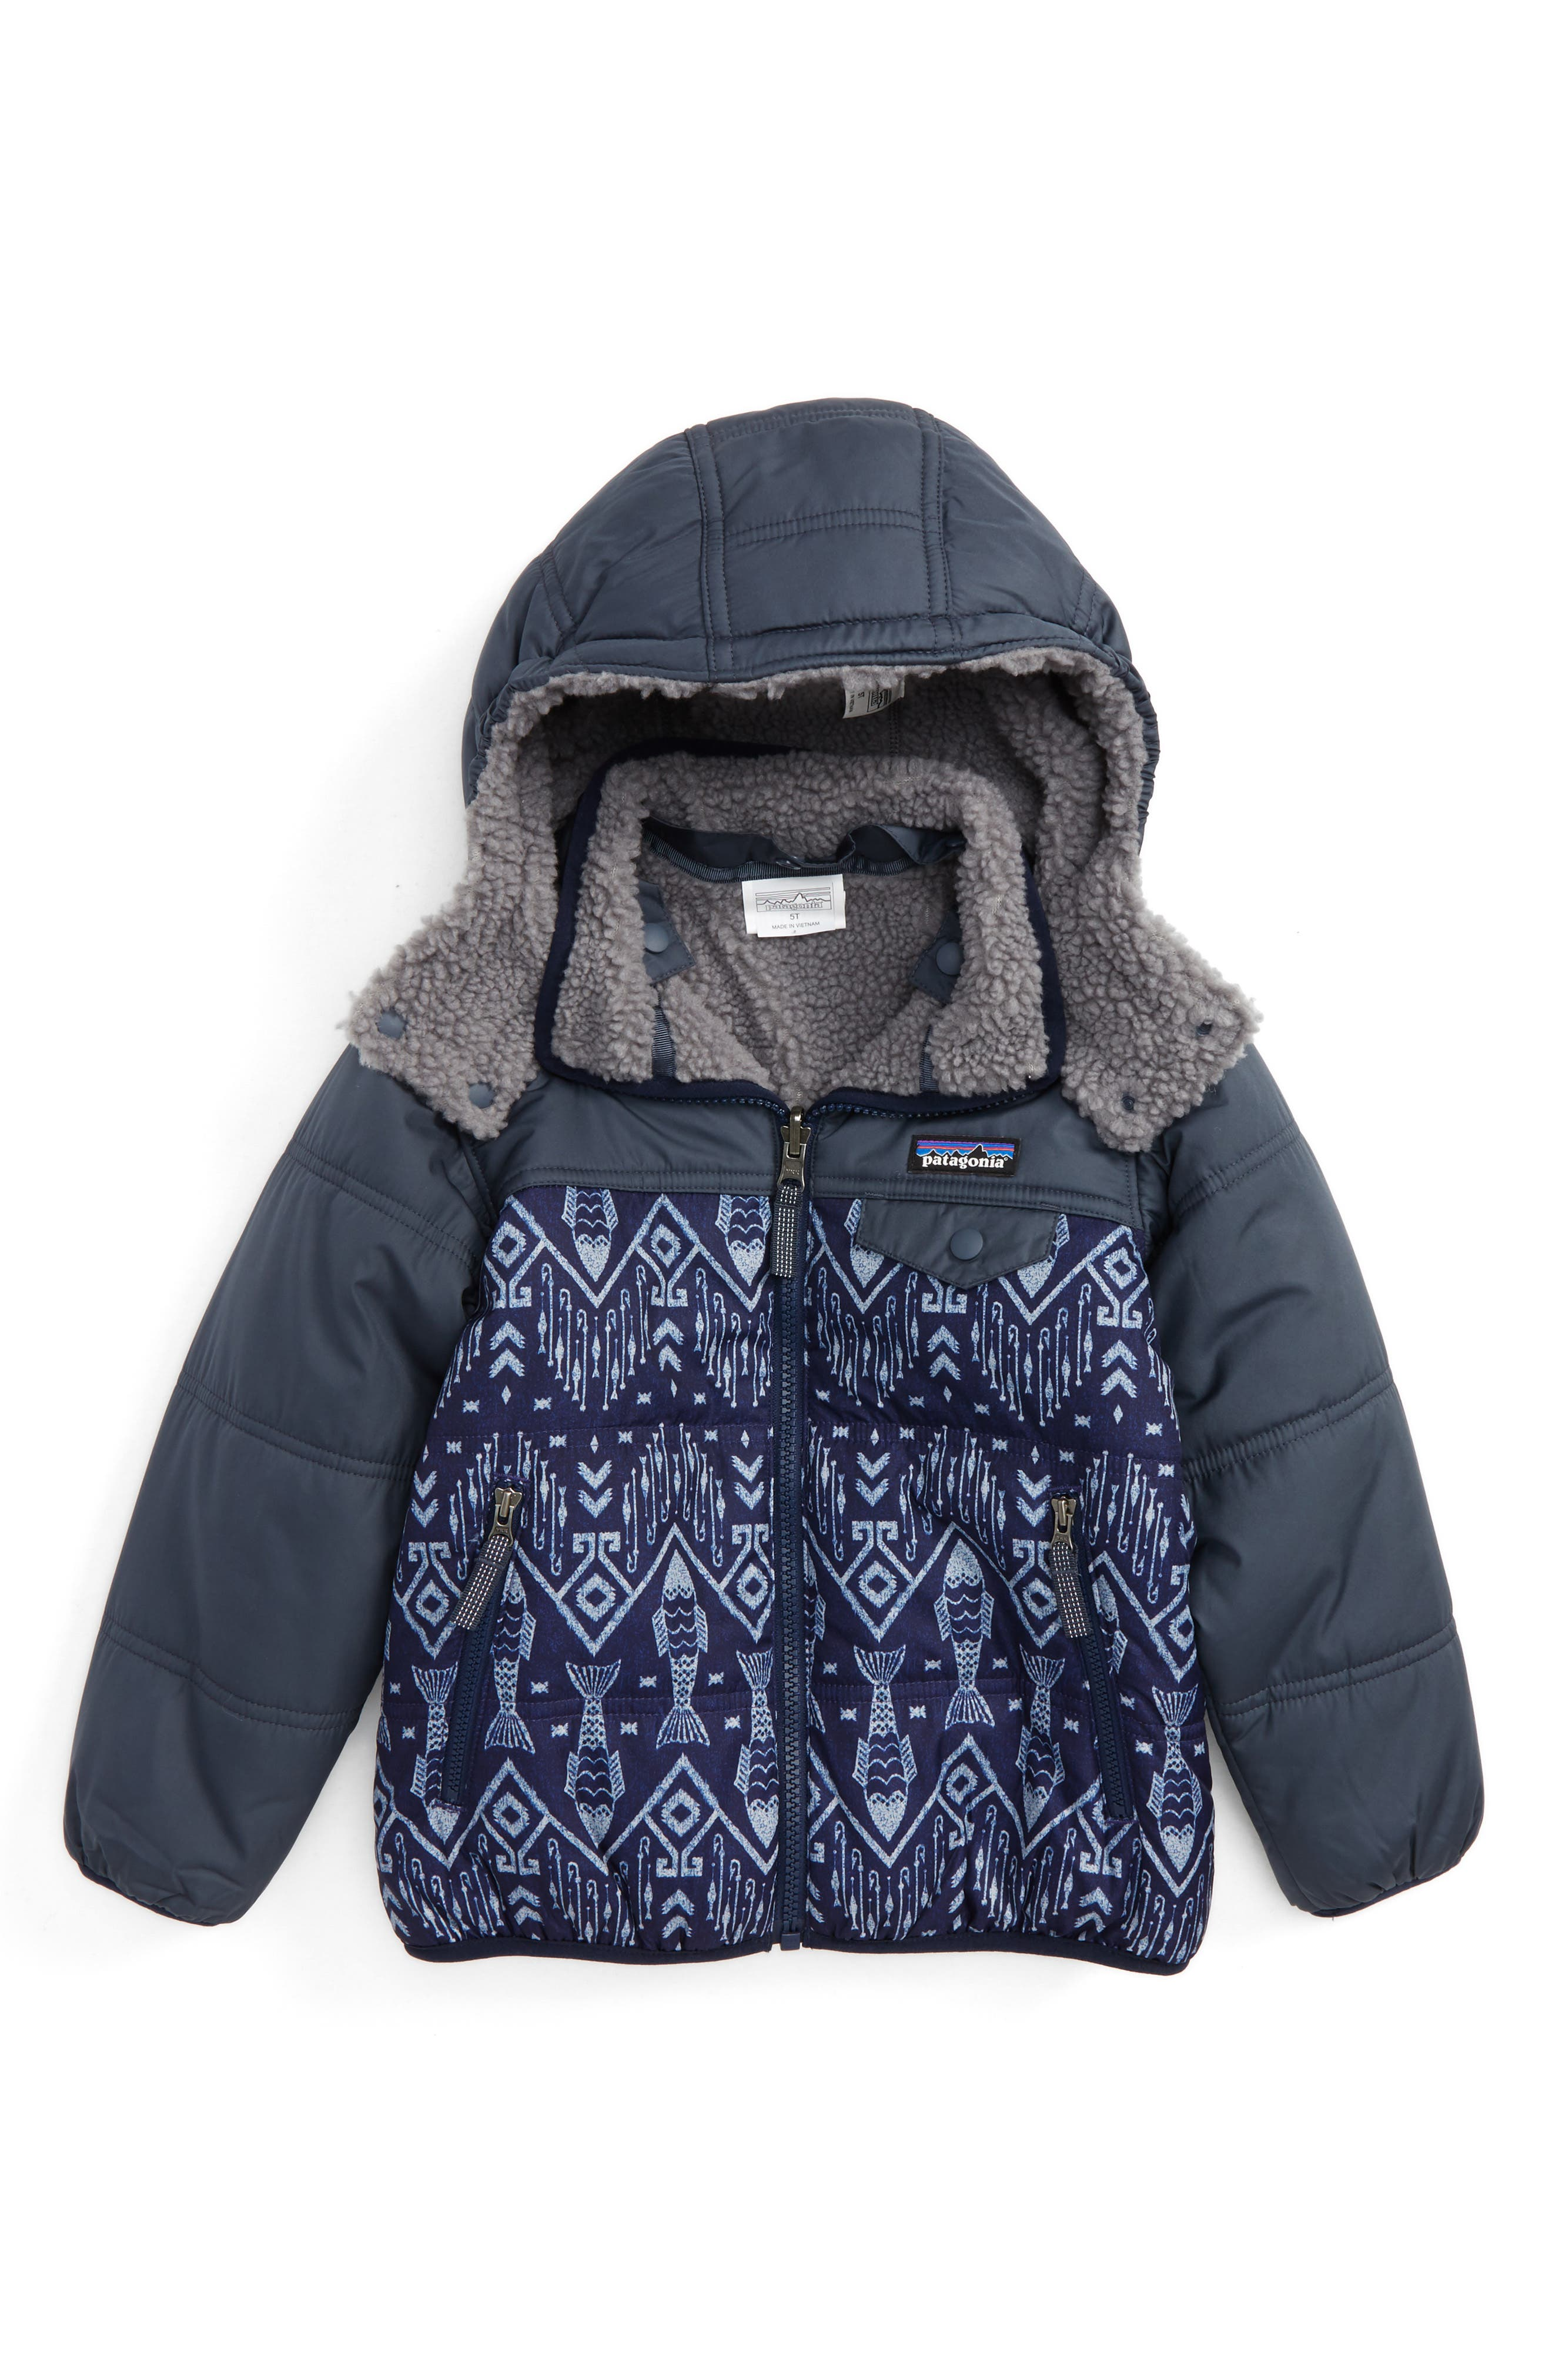 Alternate Image 1 Selected - Patagonia 'Tribbles' Reversible Water Resistant Snow Jacket(Toddler Boys & Little Boys)